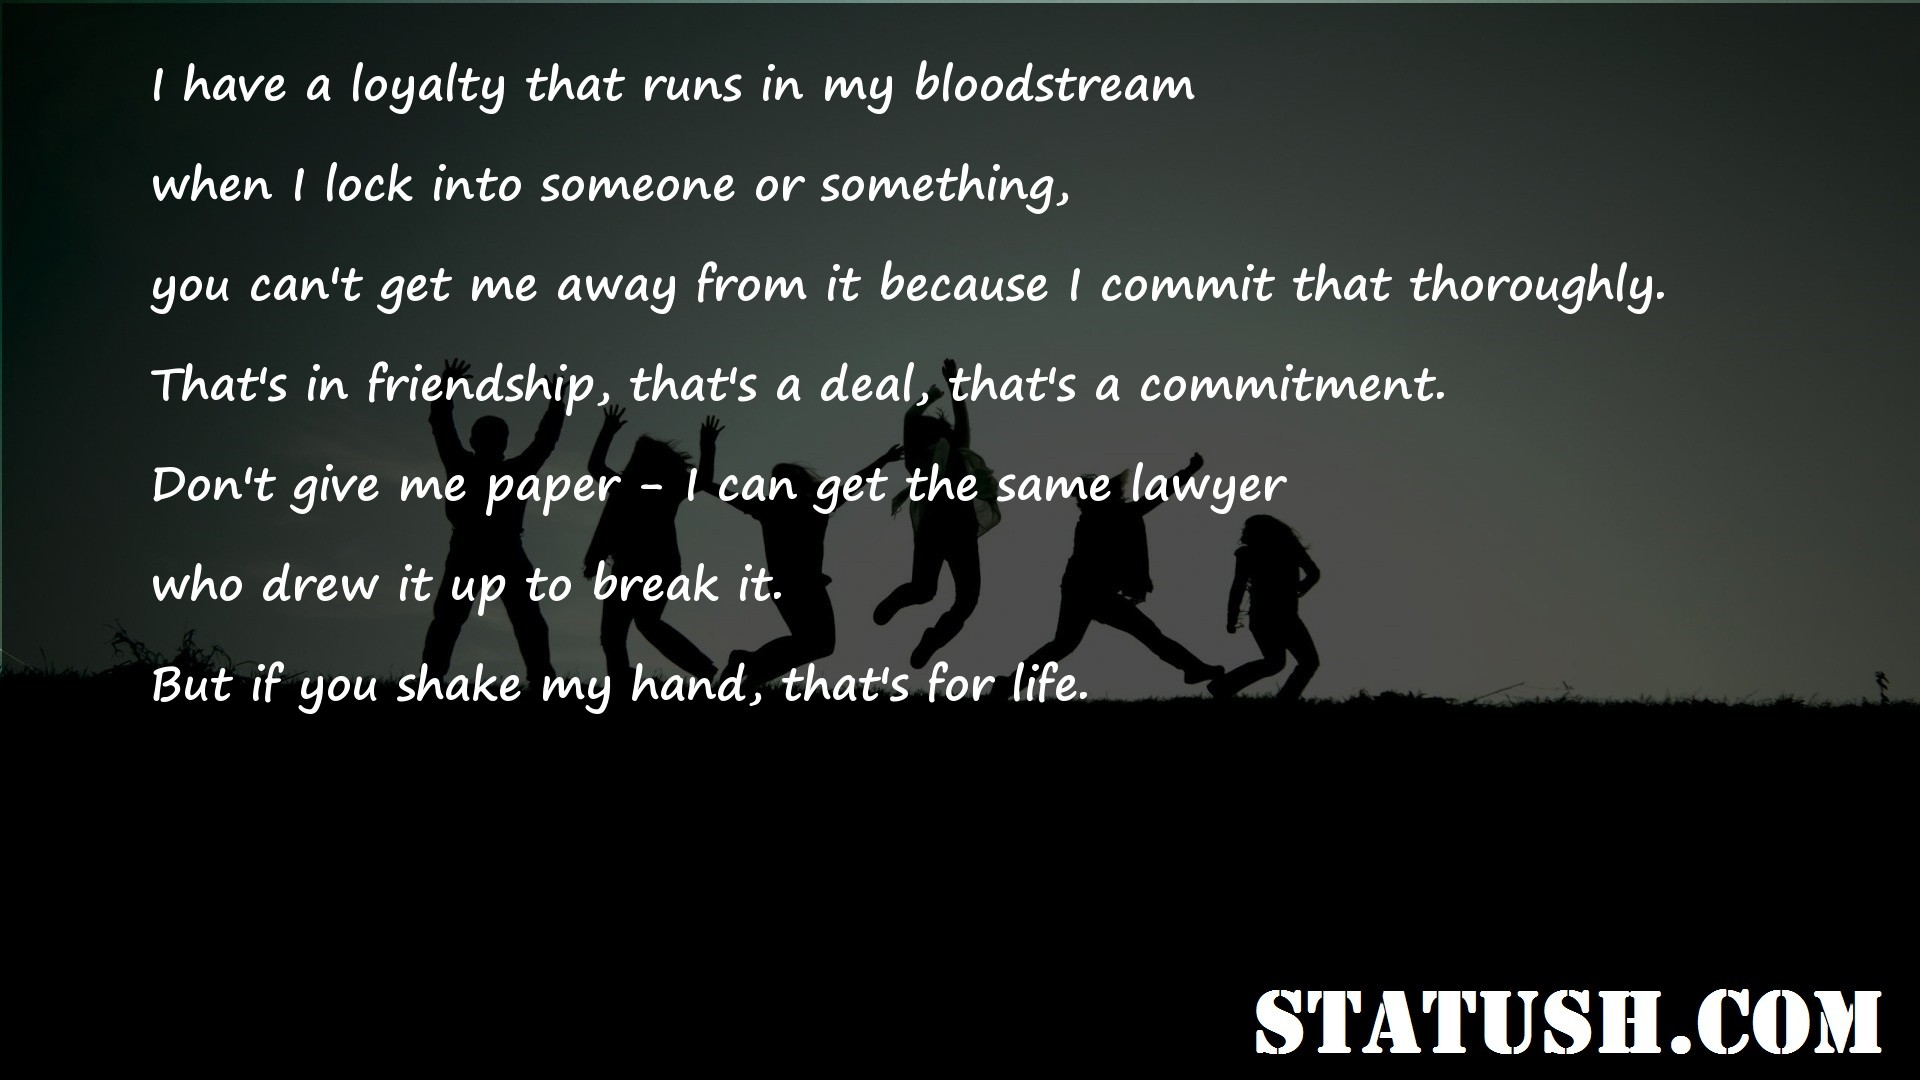 I have a loyalty that runs in my bloodstream